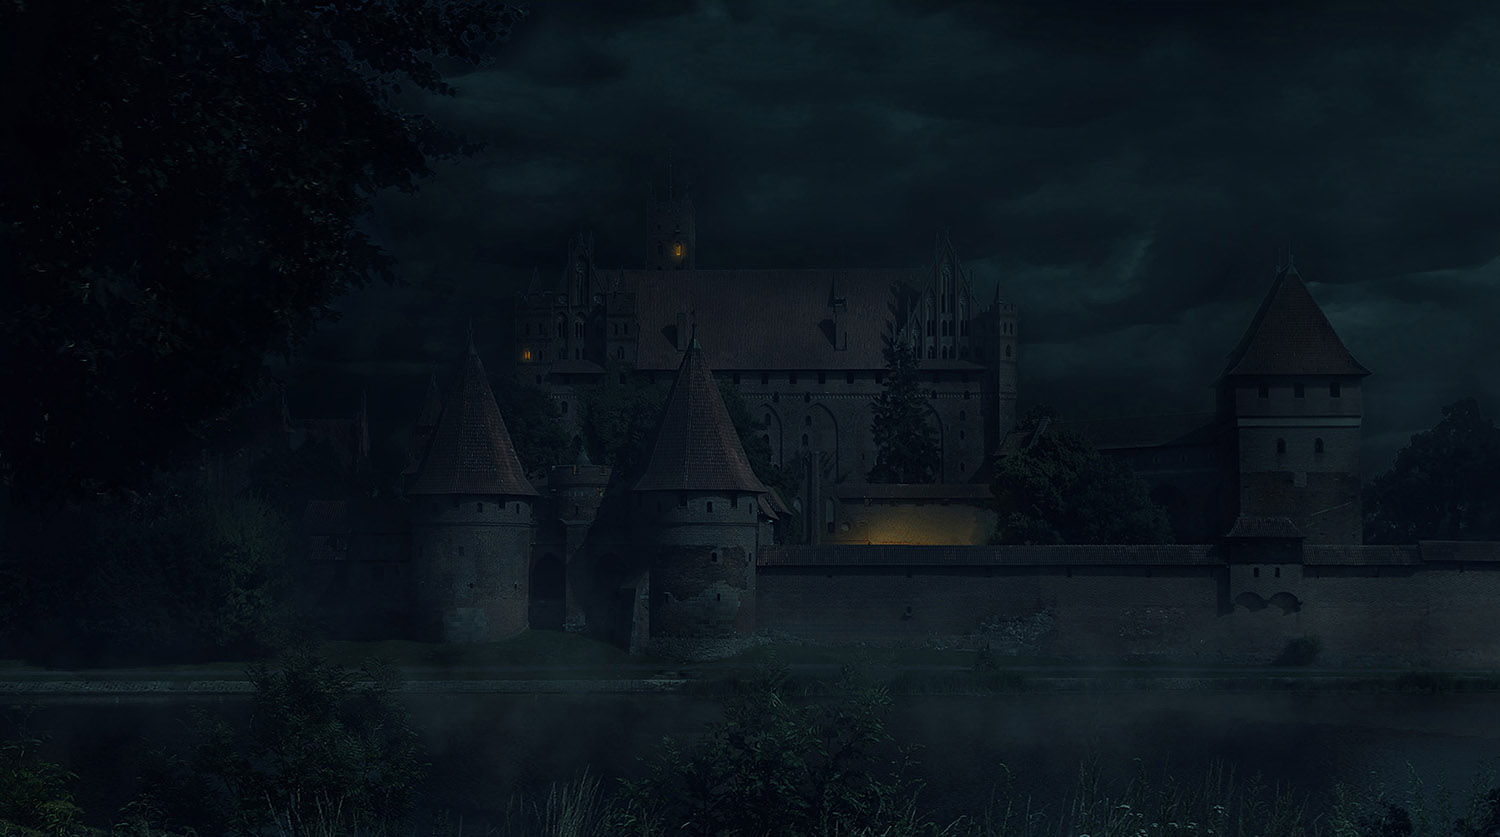 matte-painting-day-to-night-photoshop